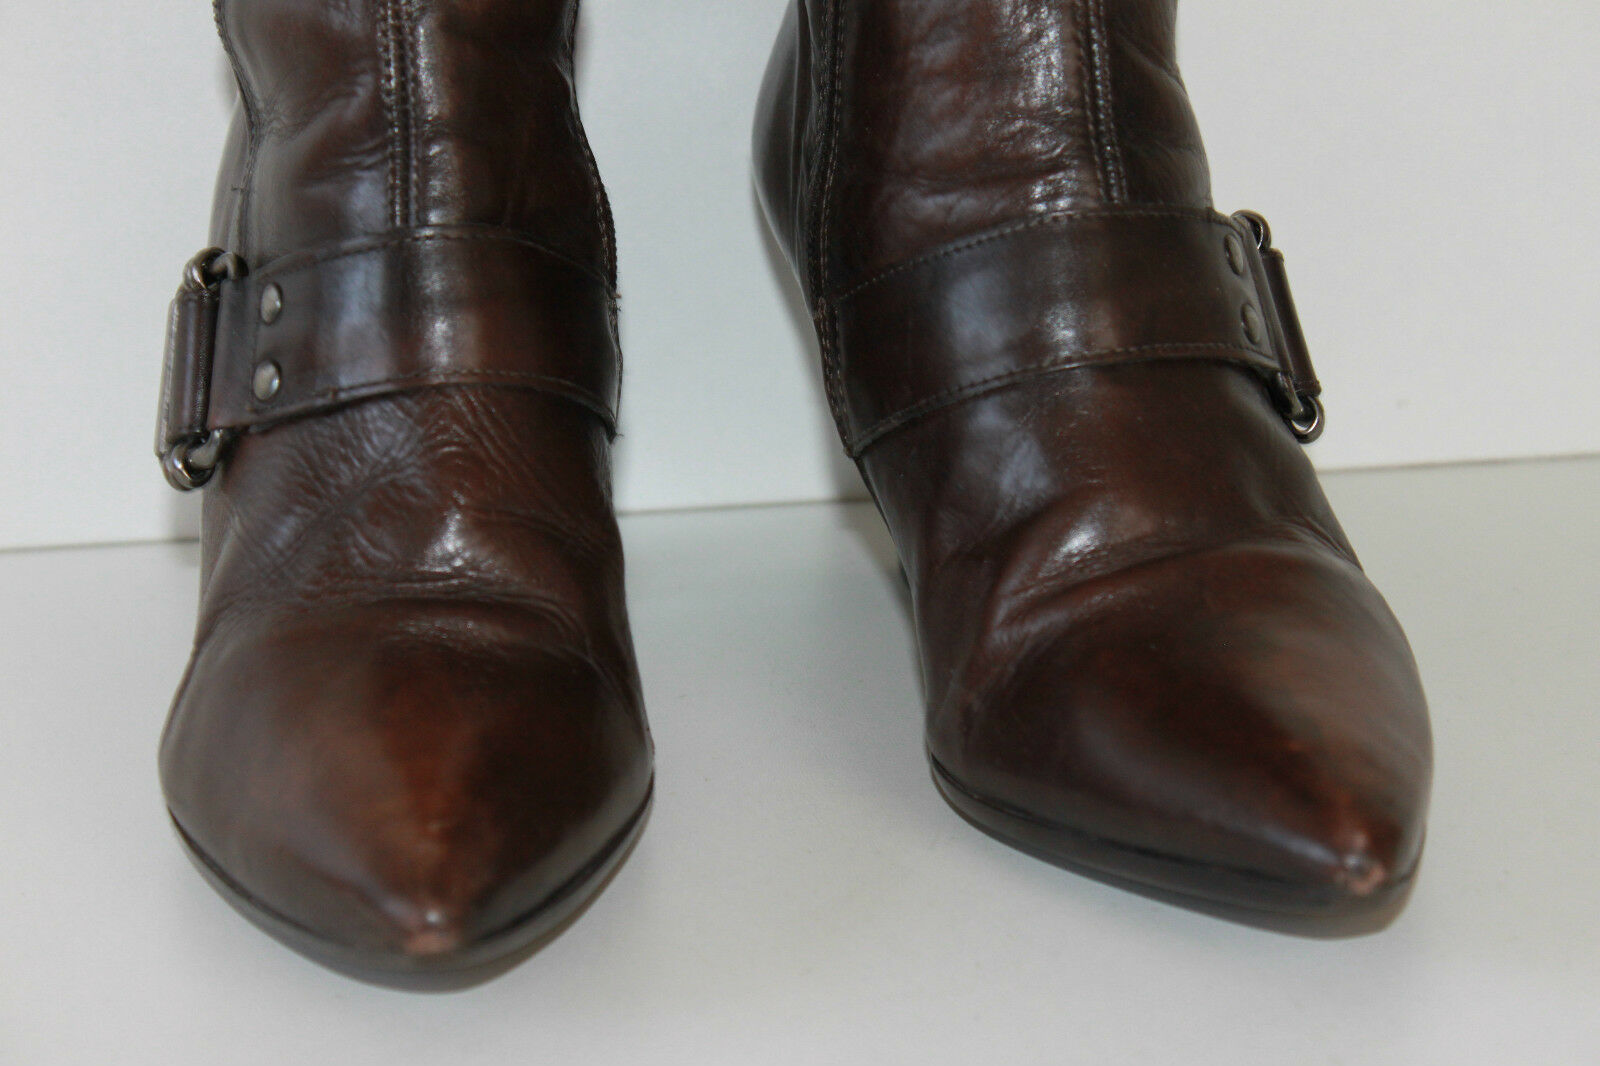 Bottes Genoux MINELLI Cuir Marron Pointues T 39 TBE